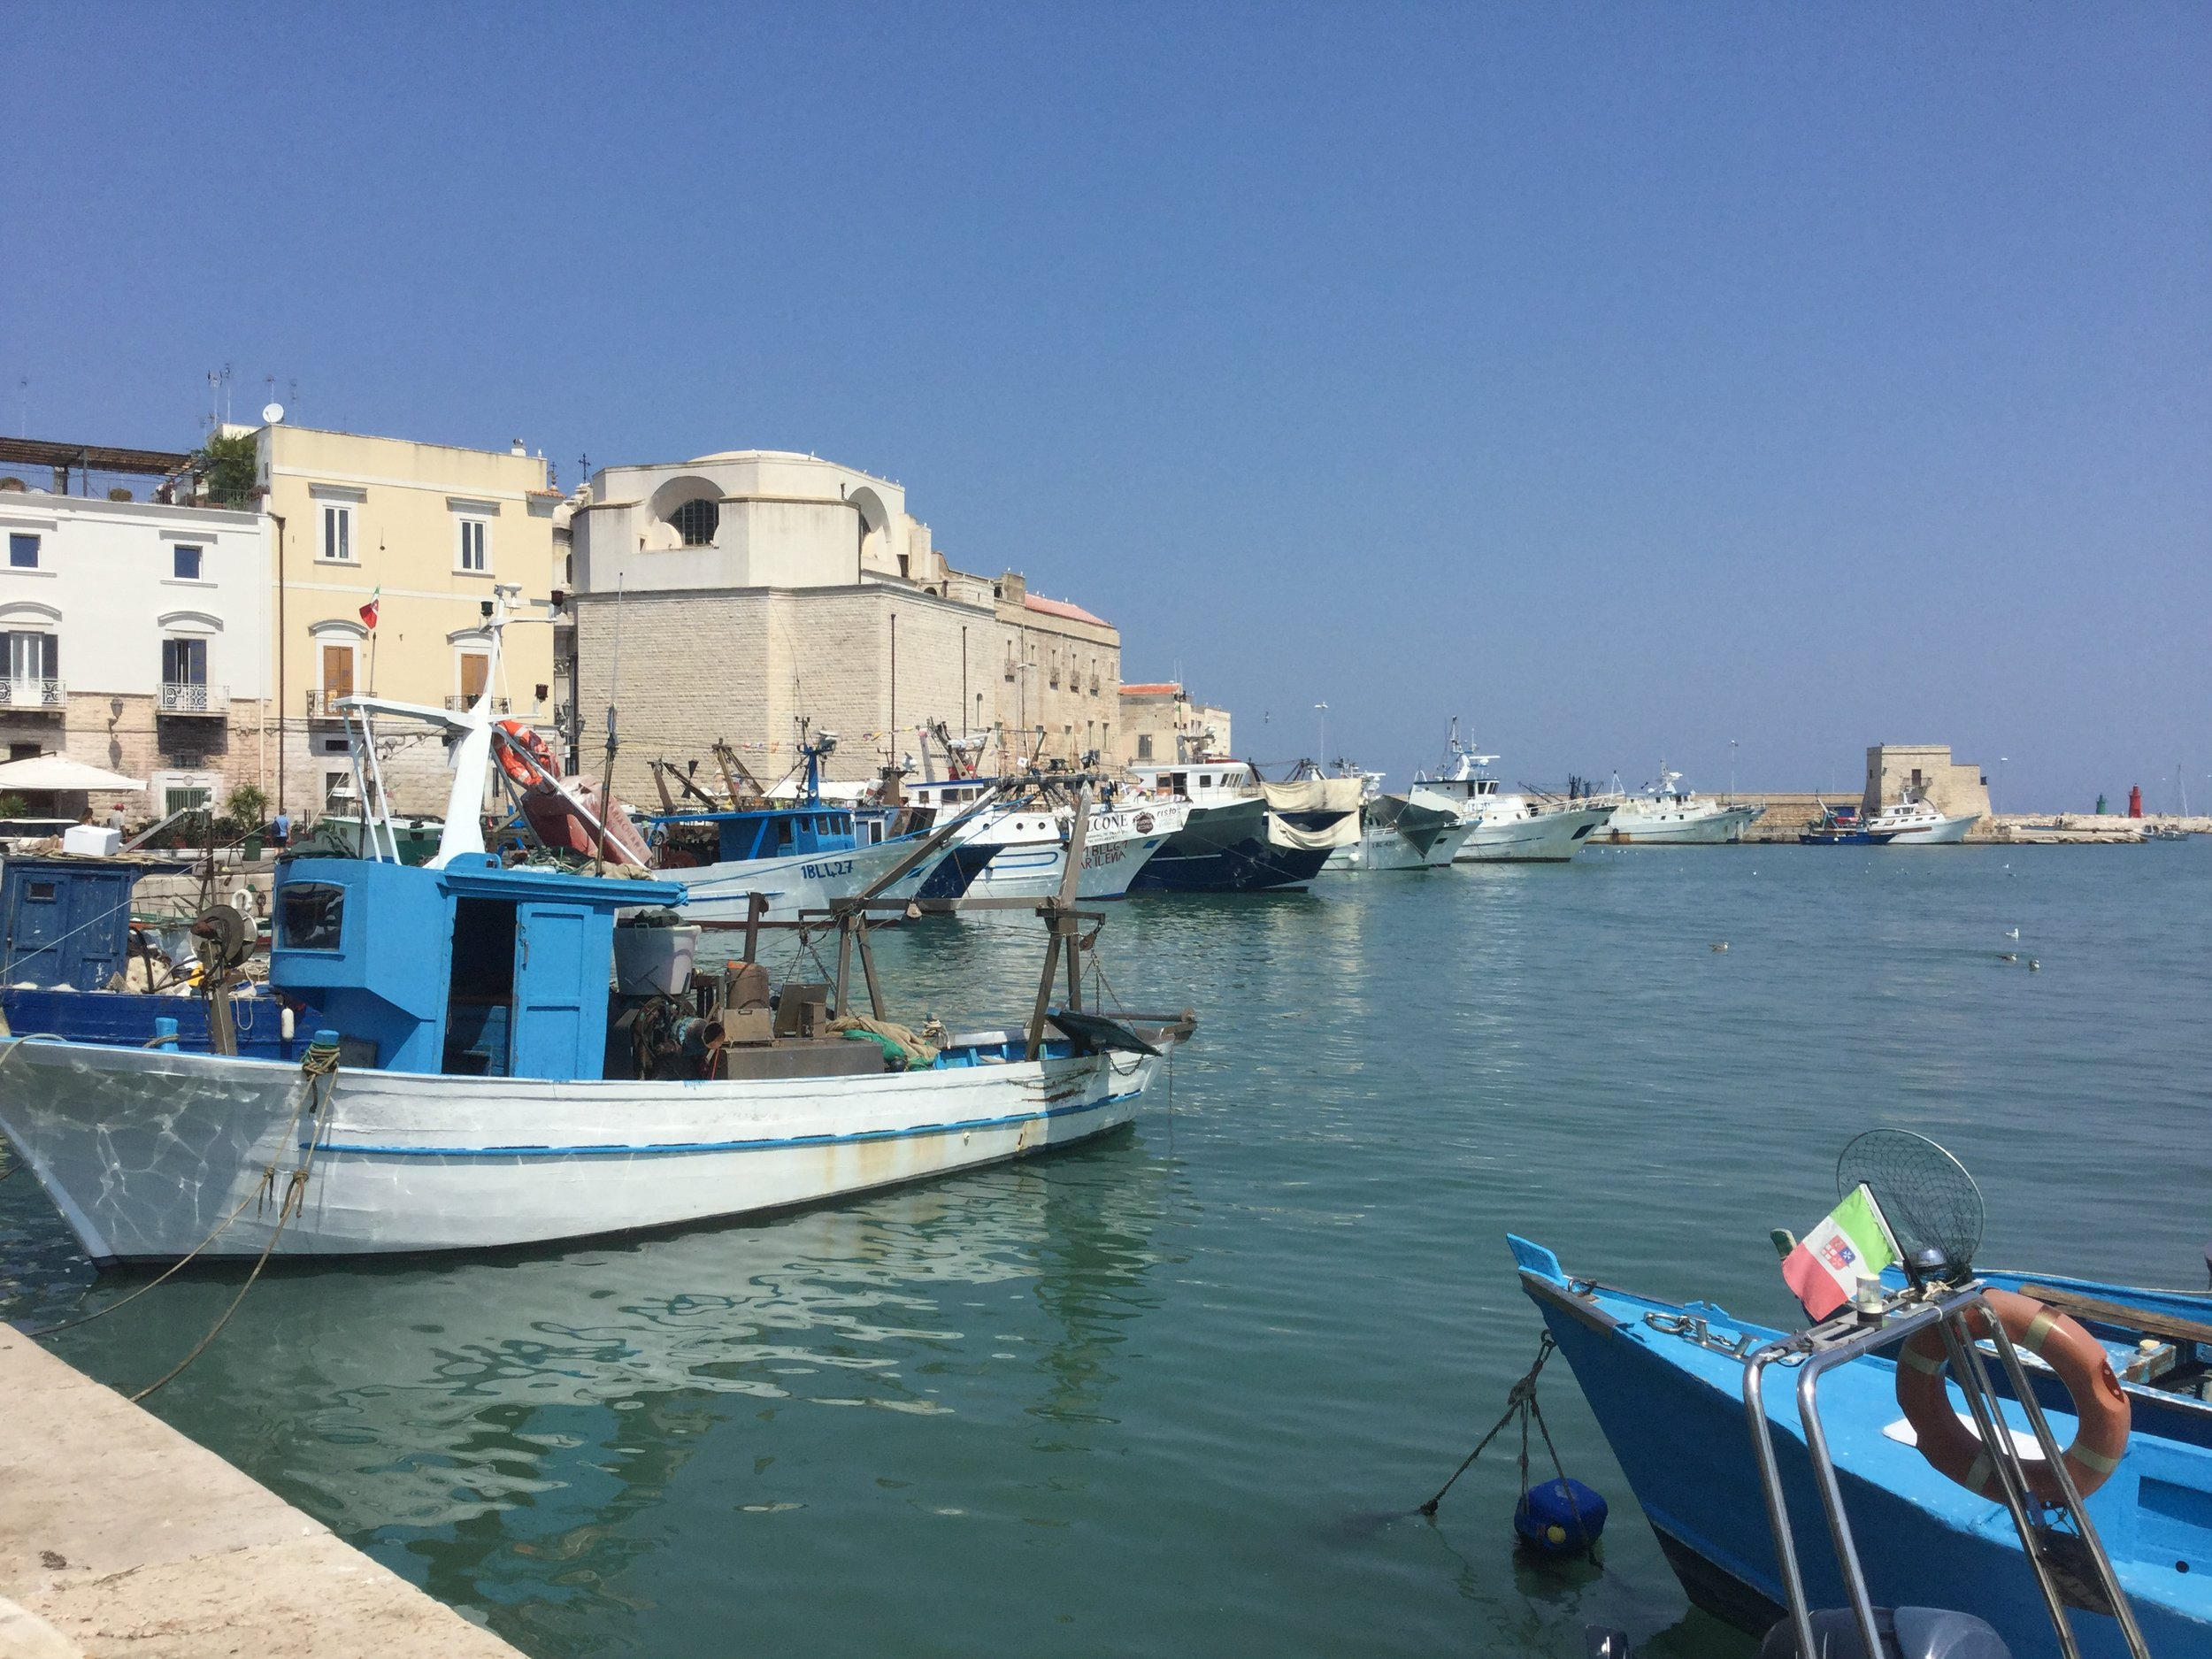 The inner harbour is very similar to that of Bisceglie, only bigger.